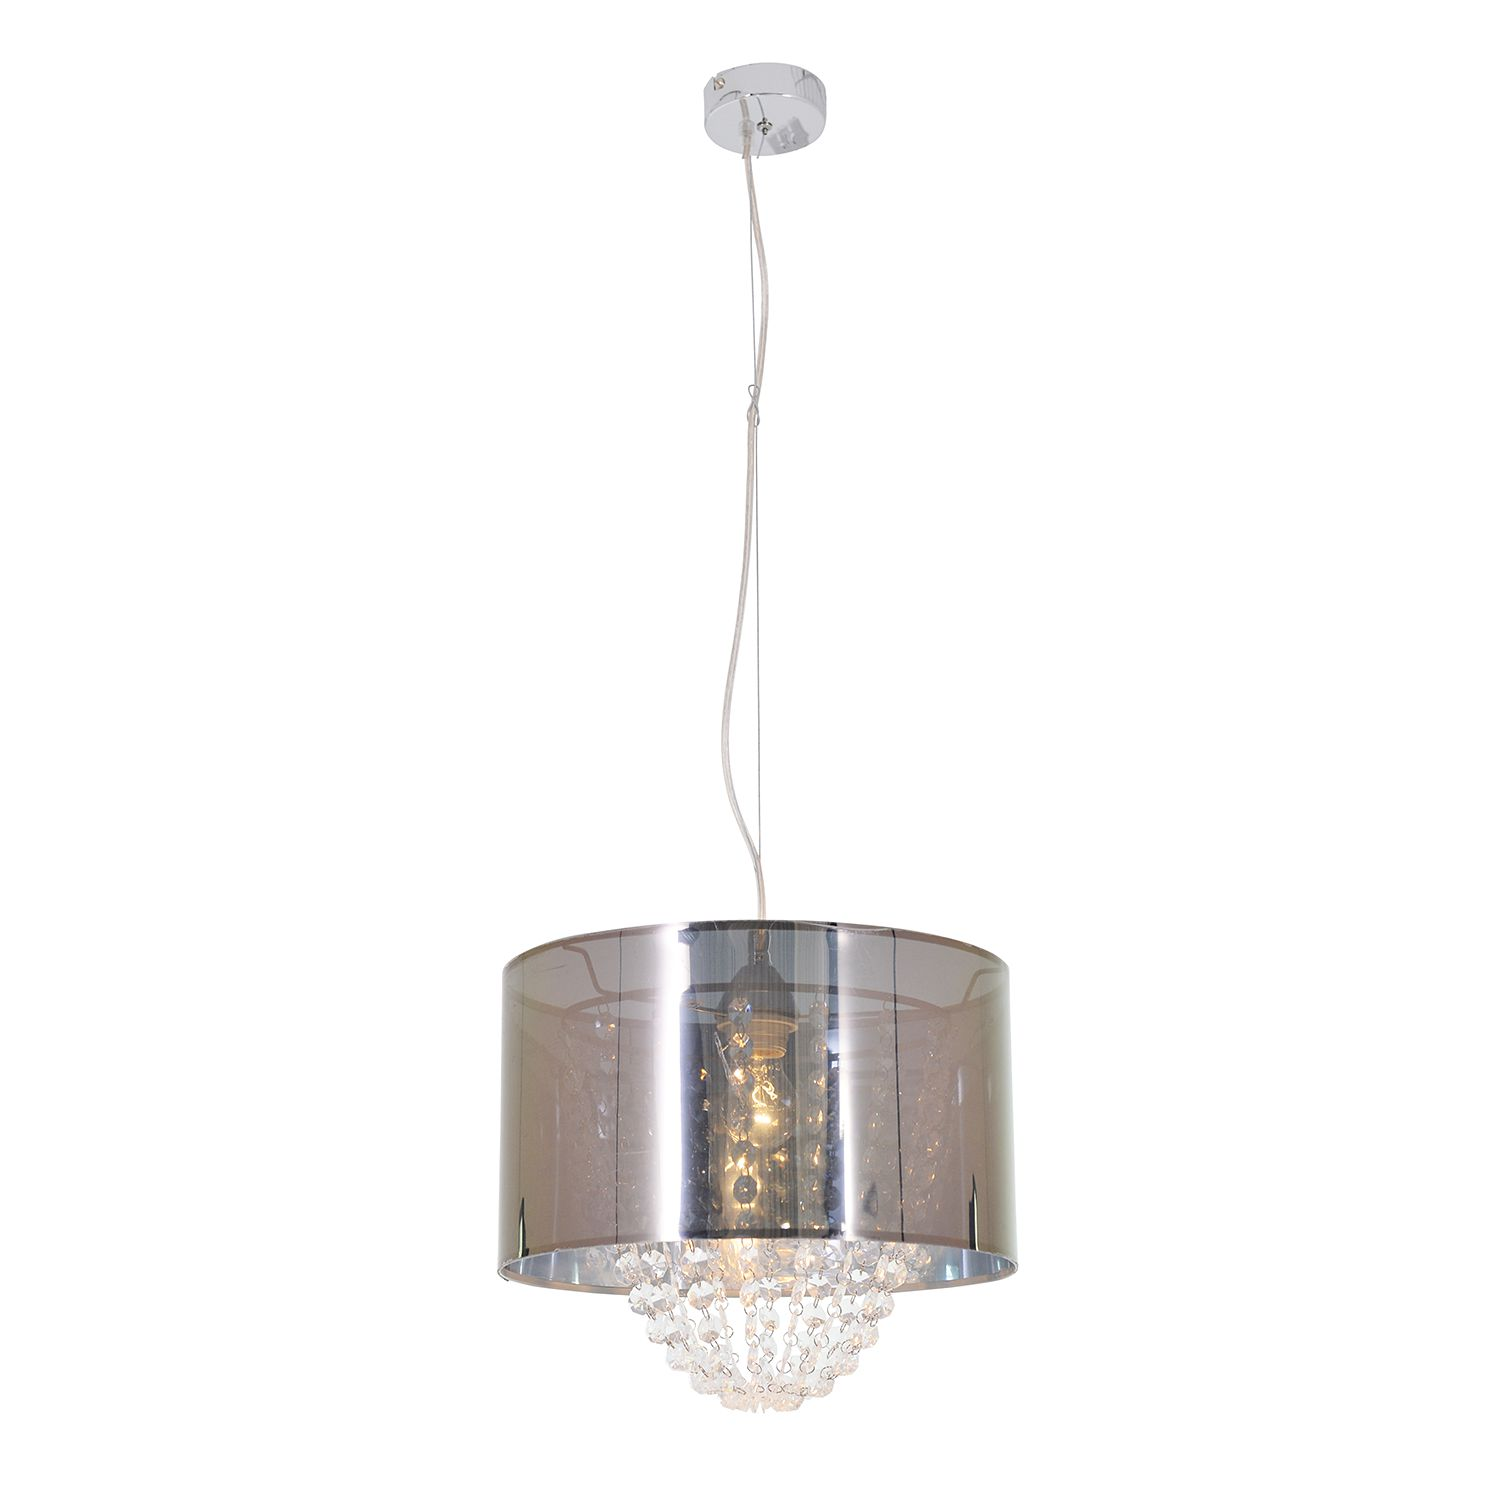 Lampada da soffitto Flame by Naeve, home24